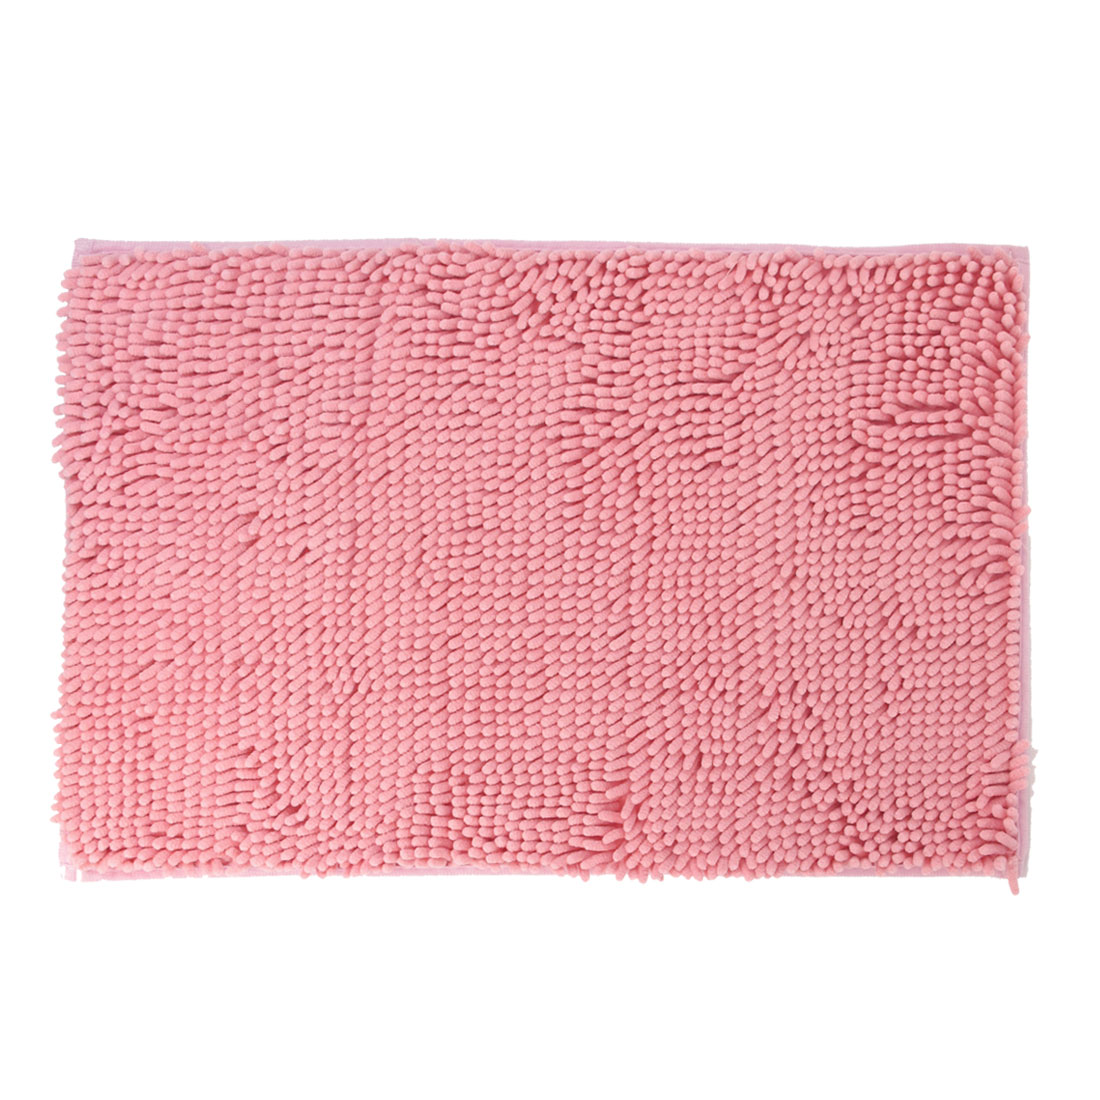 Coral Pink Antislip Microfiber Chenille Rectangular Shaped Mat Area Rug Carpet